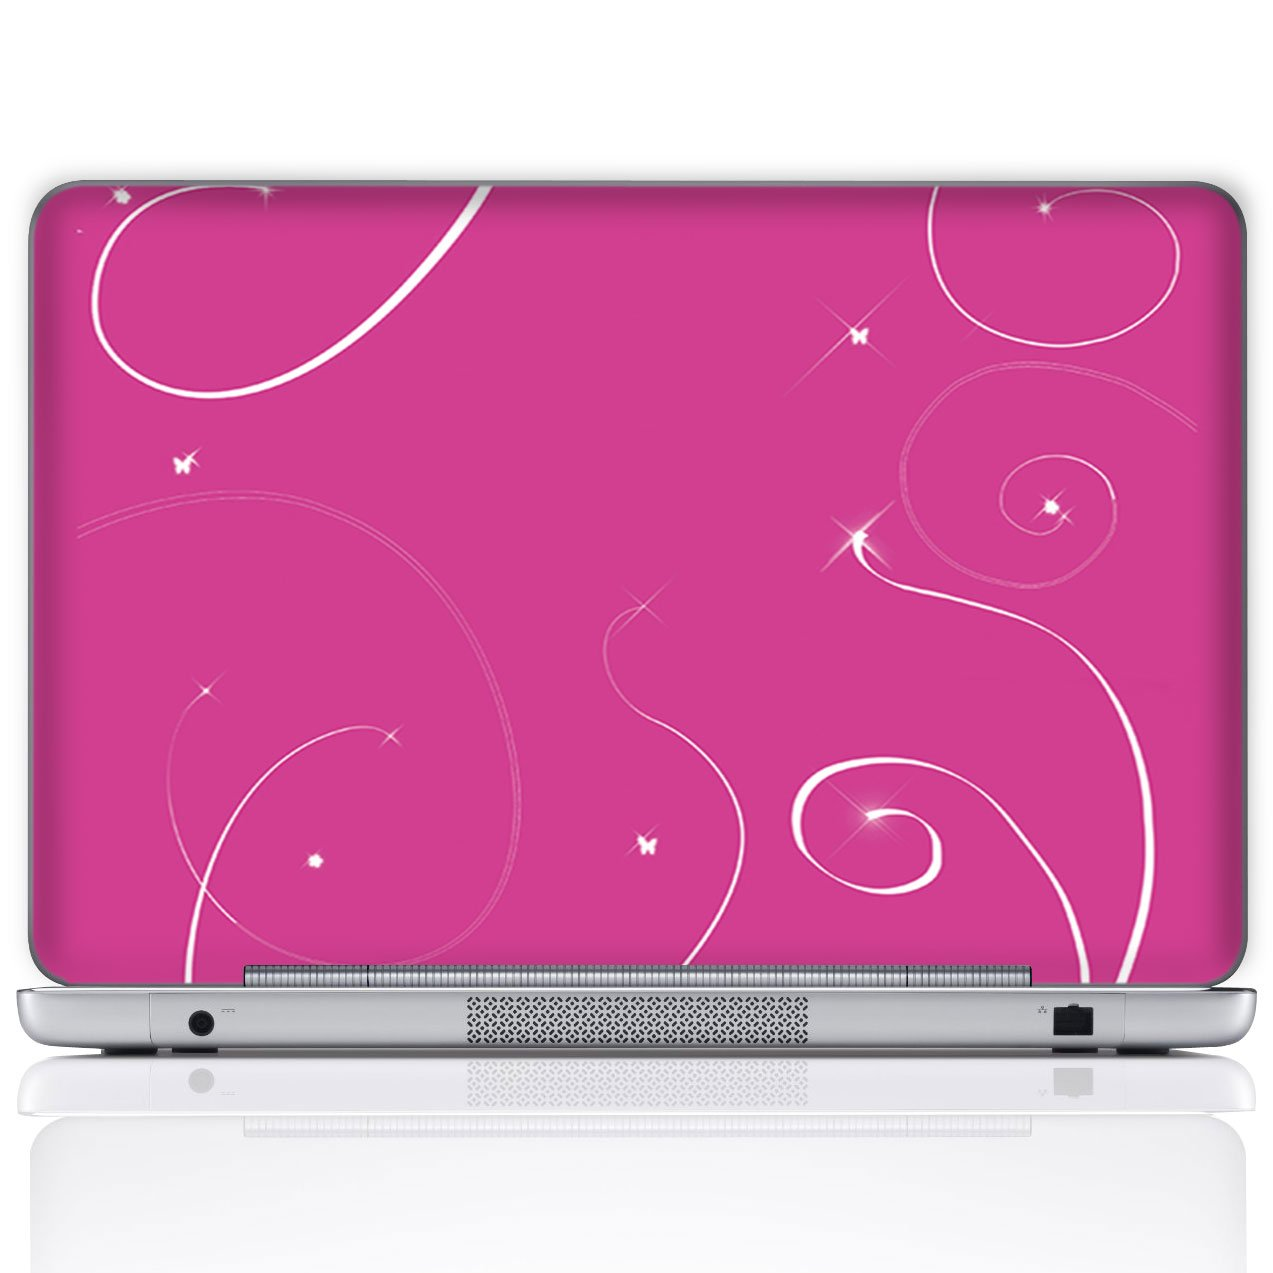 Planet Mars View Free wrist pad Meffort Inc 17 17.3 Inch Laptop Notebook Skin Sticker Cover Art Decal